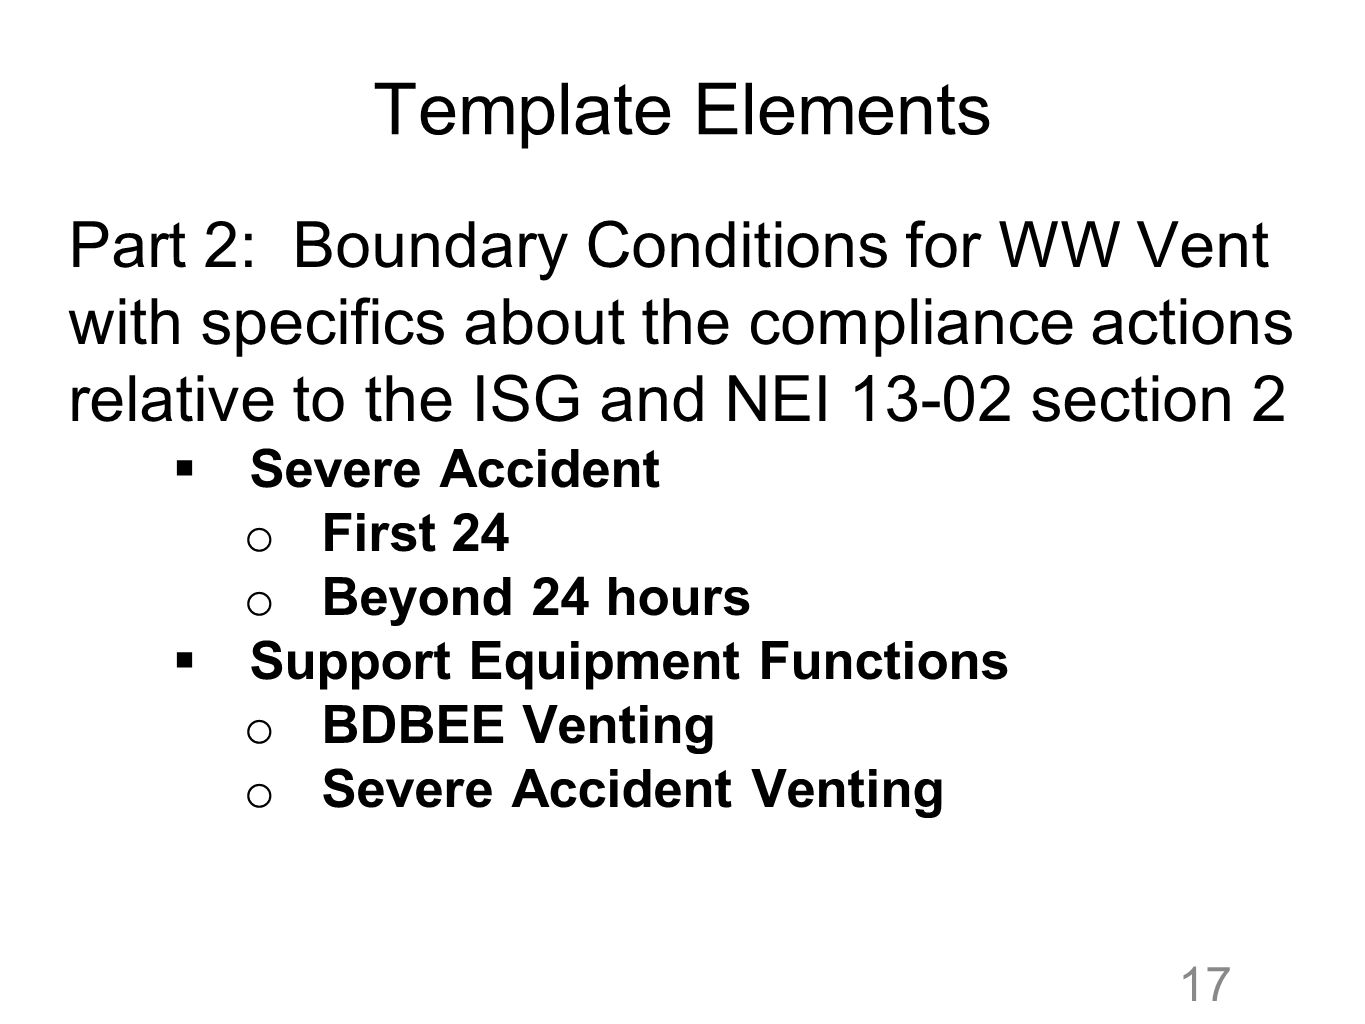 Template Elements Part 2: Boundary Conditions for WW Vent with specifics about the compliance actions relative to the ISG and NEI 13-02 section 2.